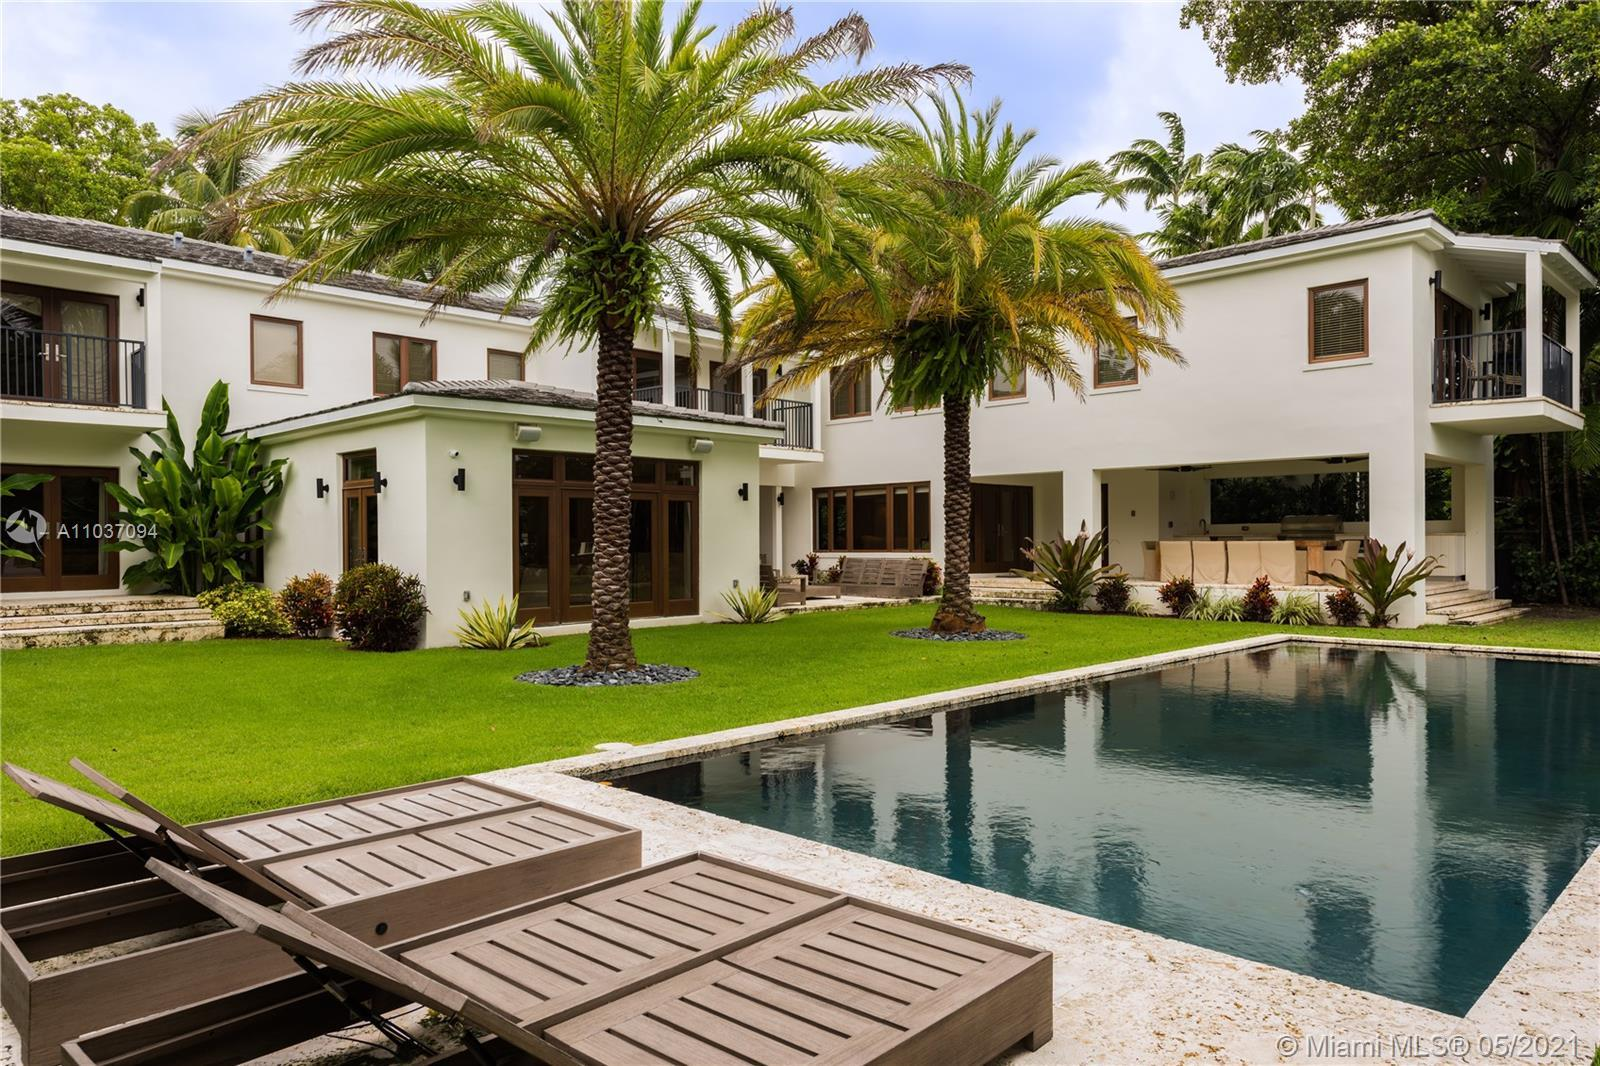 FULLY RENOVATED, 2-STORY WATERFRONT HOME ON A PRIVATE AND GATED COMPOUND LOCATED ON SUNSET ISLAND I.